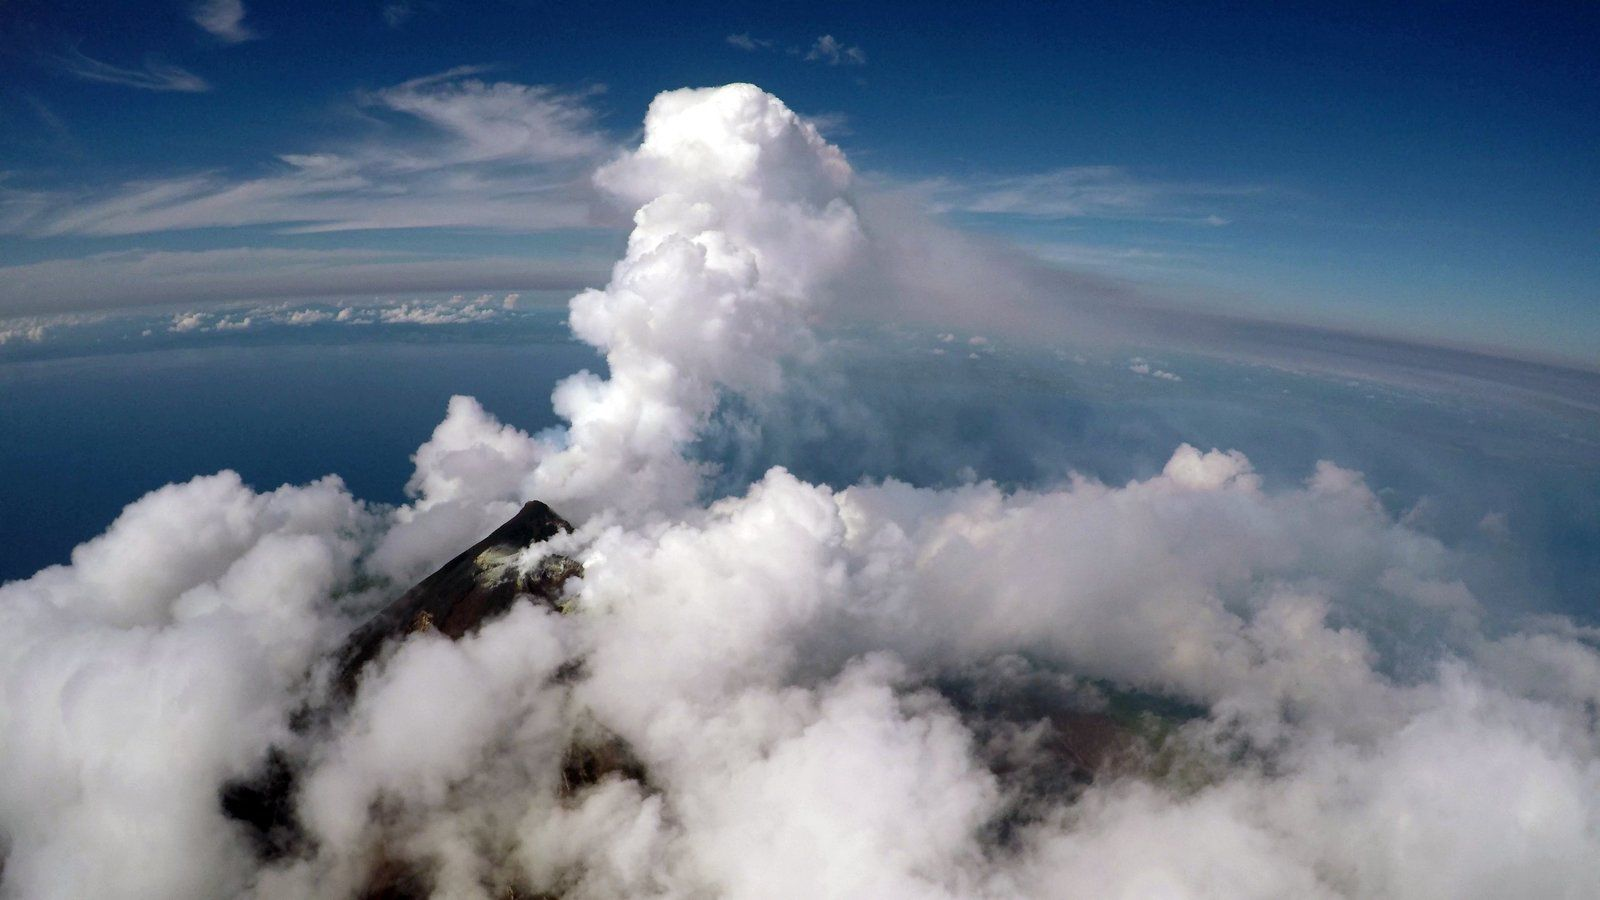 Manam - View from UAS during plume approach. The floating plume from the south crater rose to about 2-3 km above sea level before dispersing laterally - photo K. Wood 05.2019